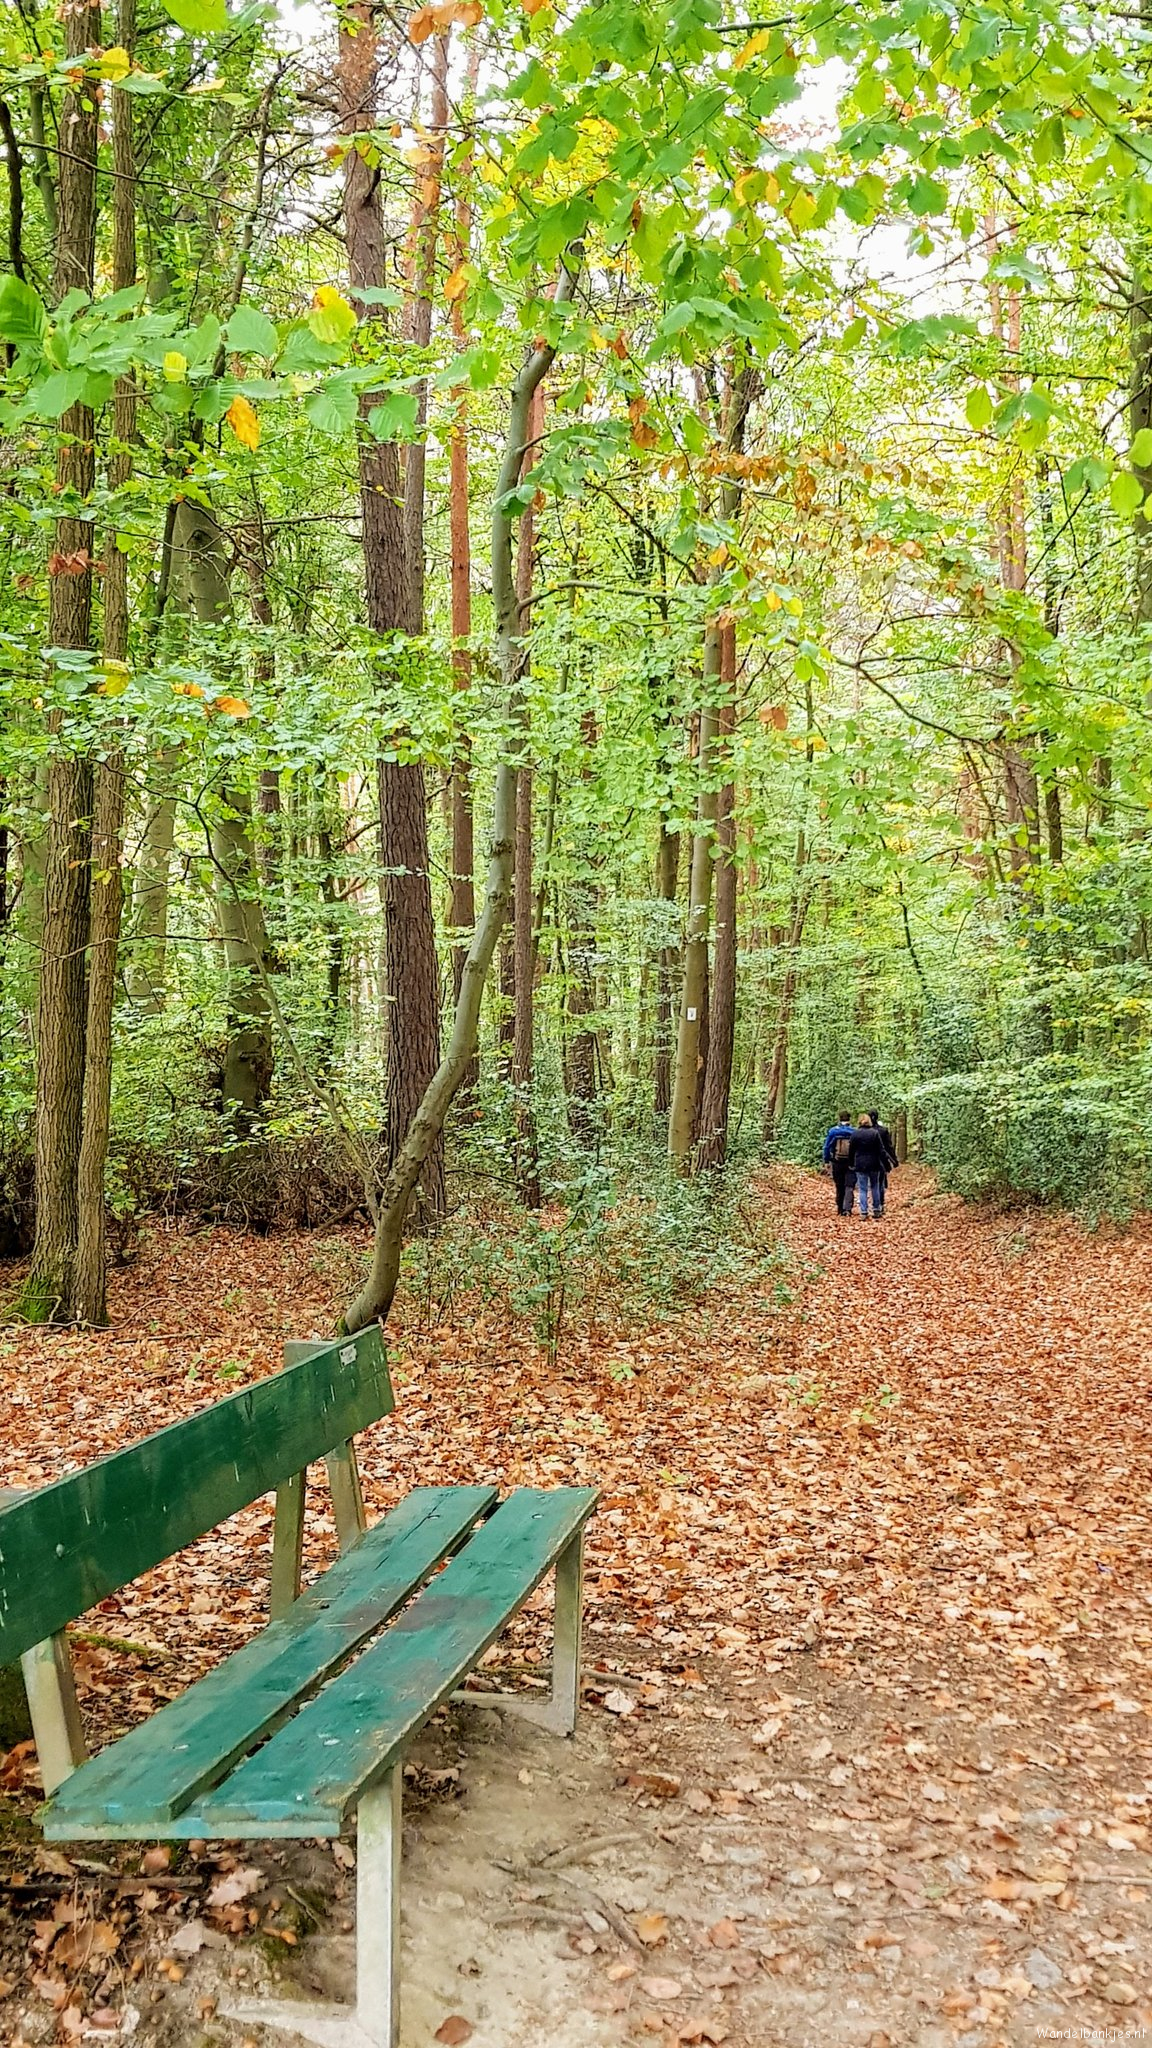 rt-wolf-walking-plan-beech forests-at-ahrweiler-walking benches-https-t-co-rzfxyz12gq